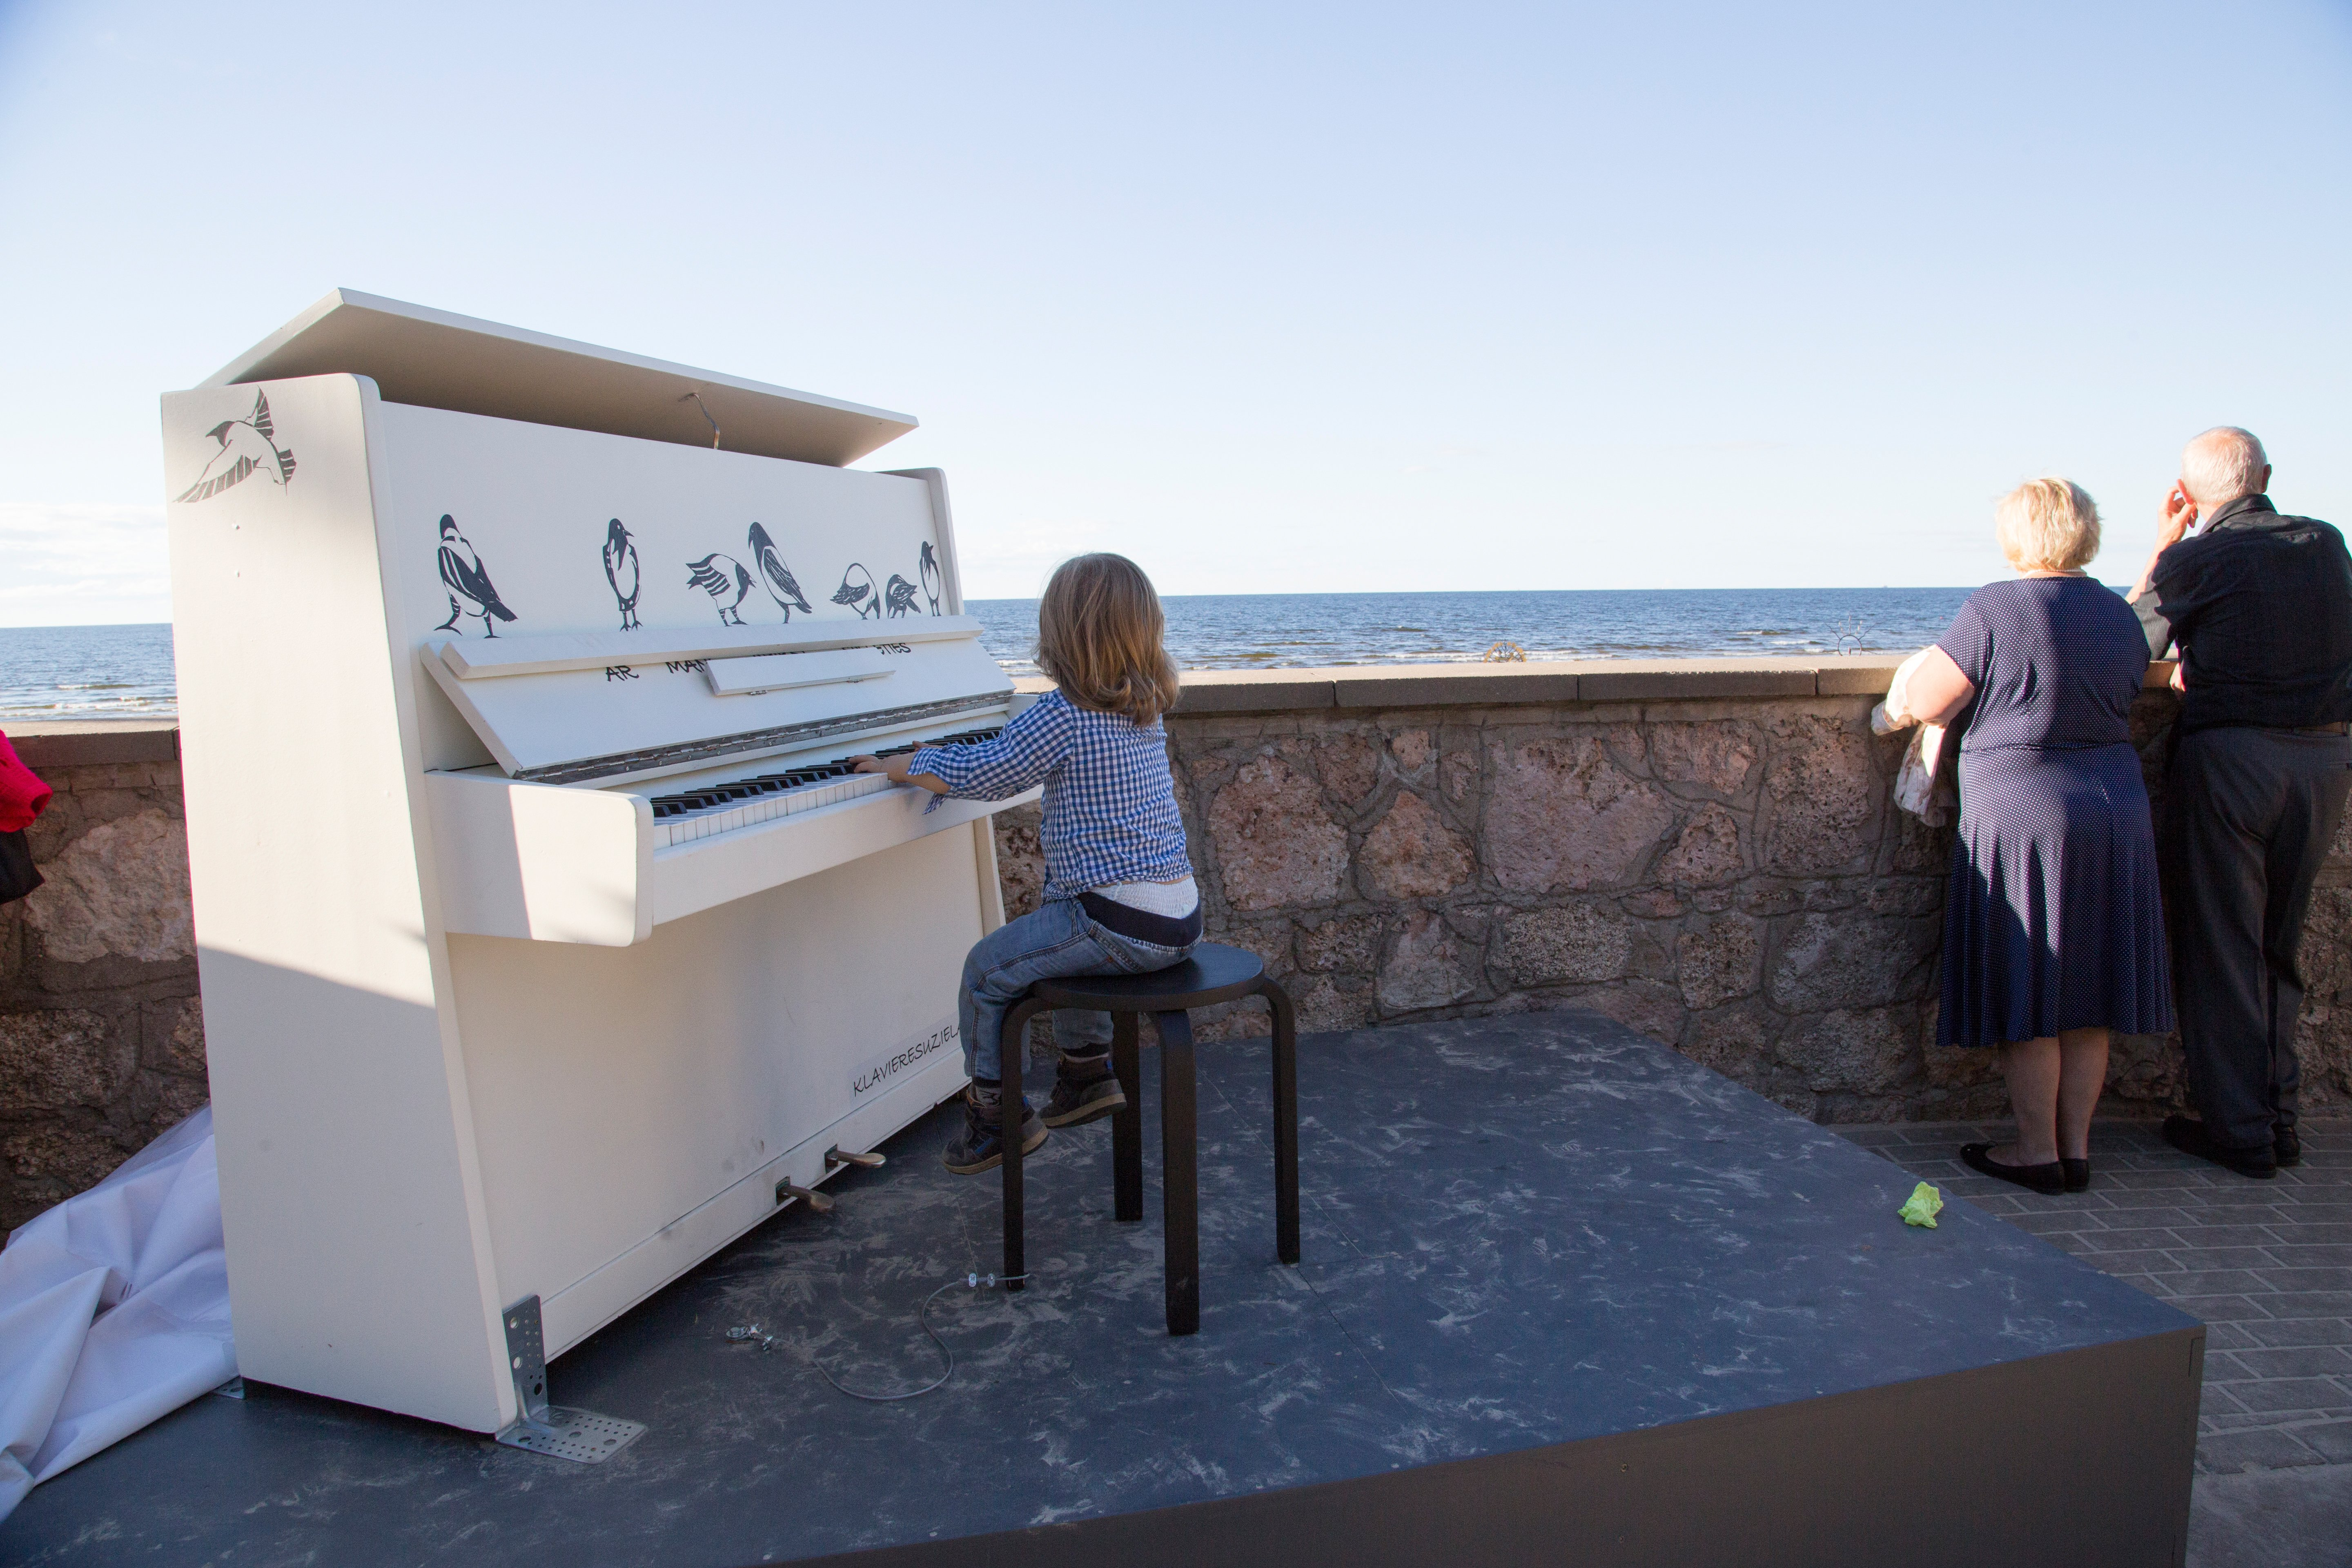 A boy plays piano at the Latvian Baltic Sea beach Jurmala. With a panoramic view of the sea,|Photo: Getty Images